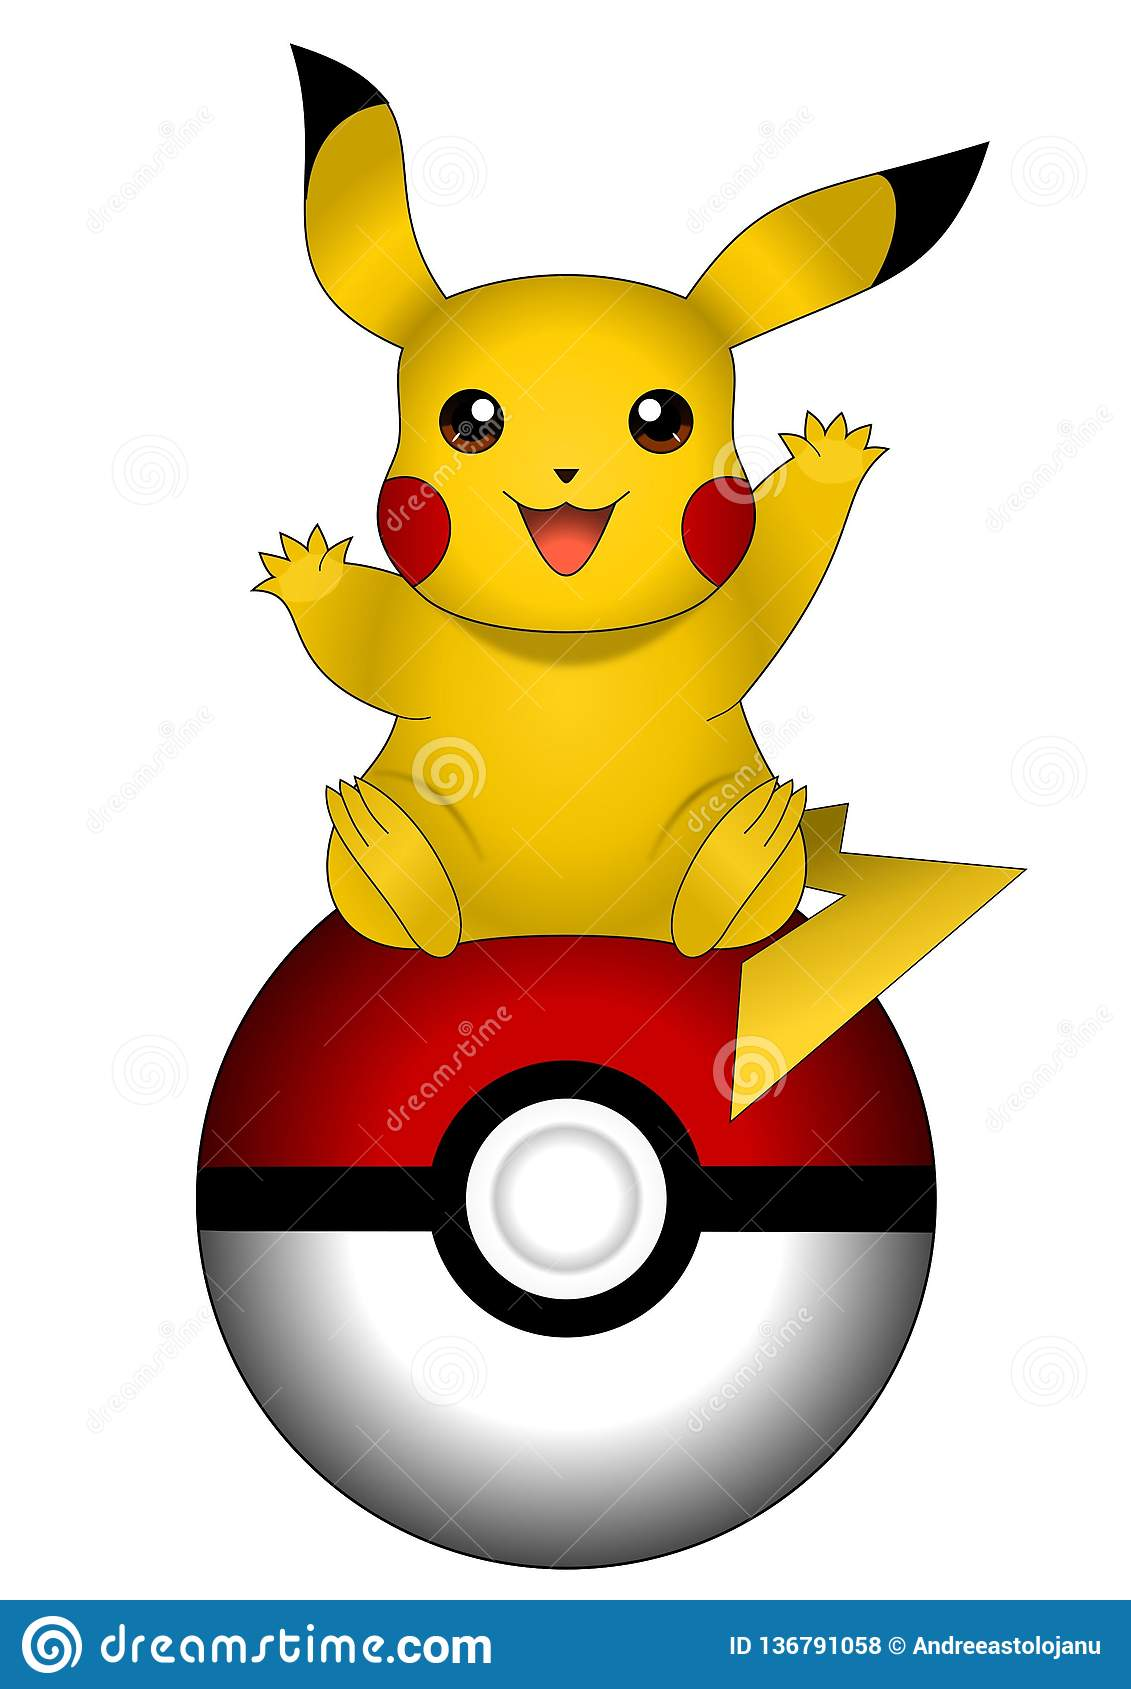 Pikachu cartoons illustrations vector stock images 42 pictures to download from - Image pikachu ...